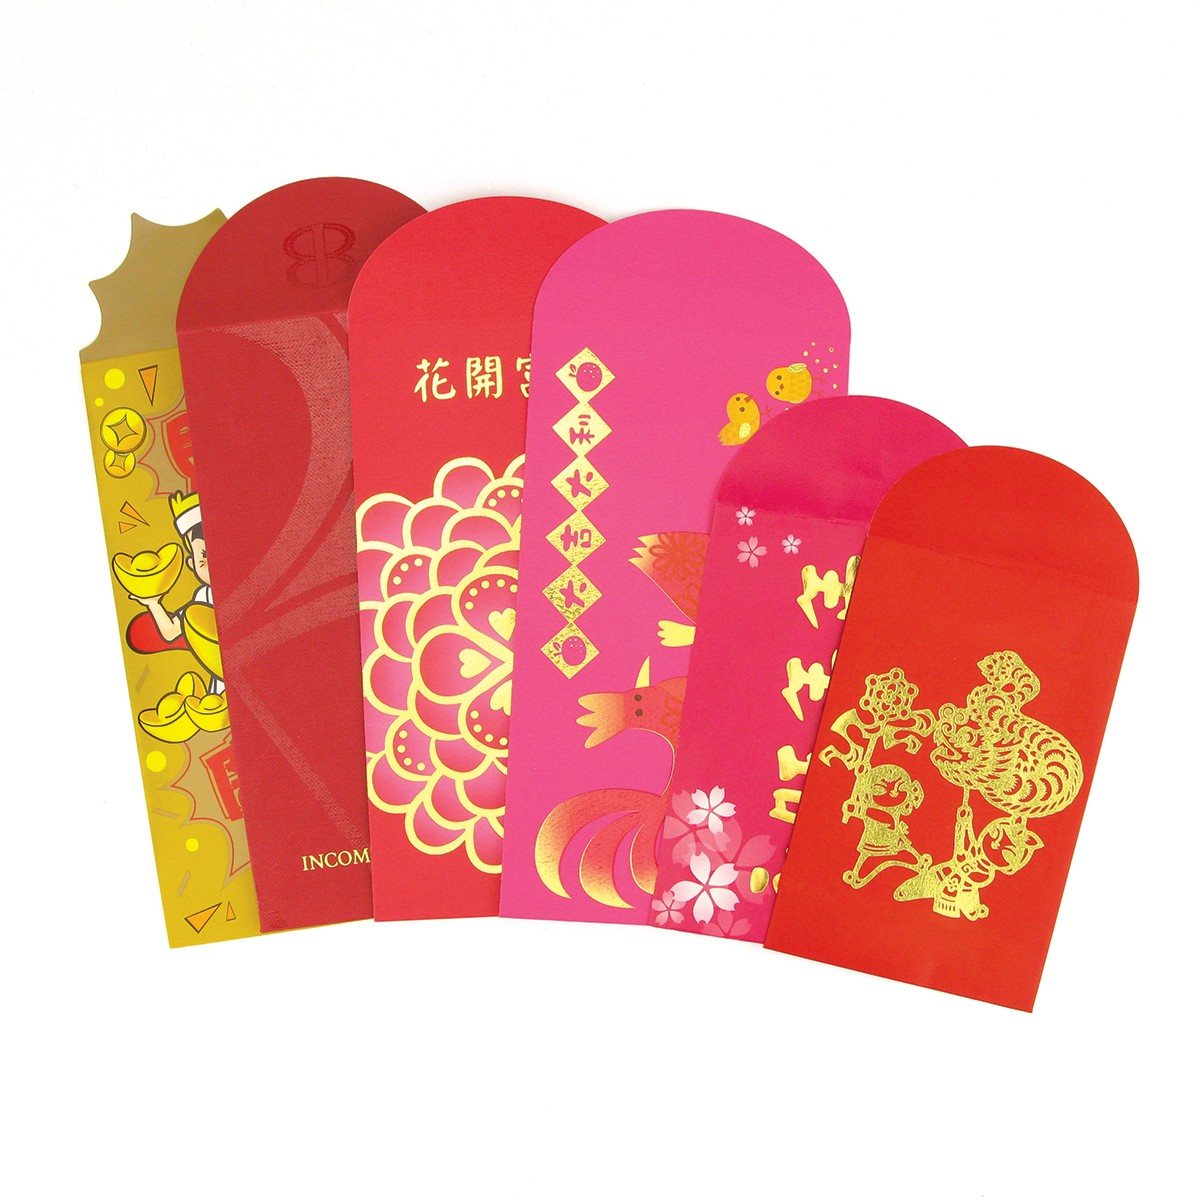 Custom Red Pocket Corporate Gift for Chinese New Year